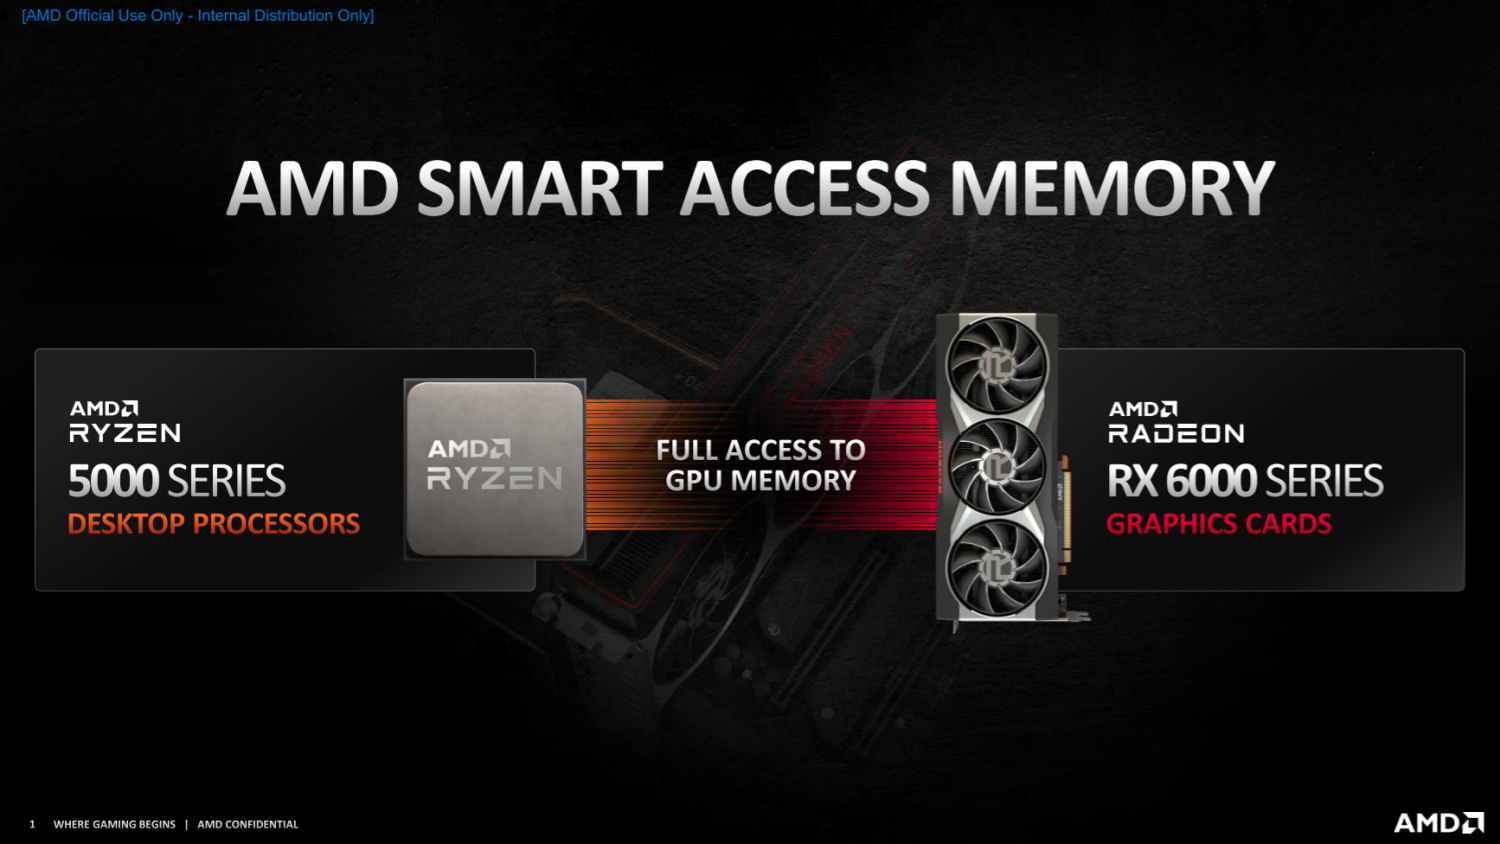 NVIDIA has its own 'Smart Access Memory' like AMD's new RDNA 2 coming